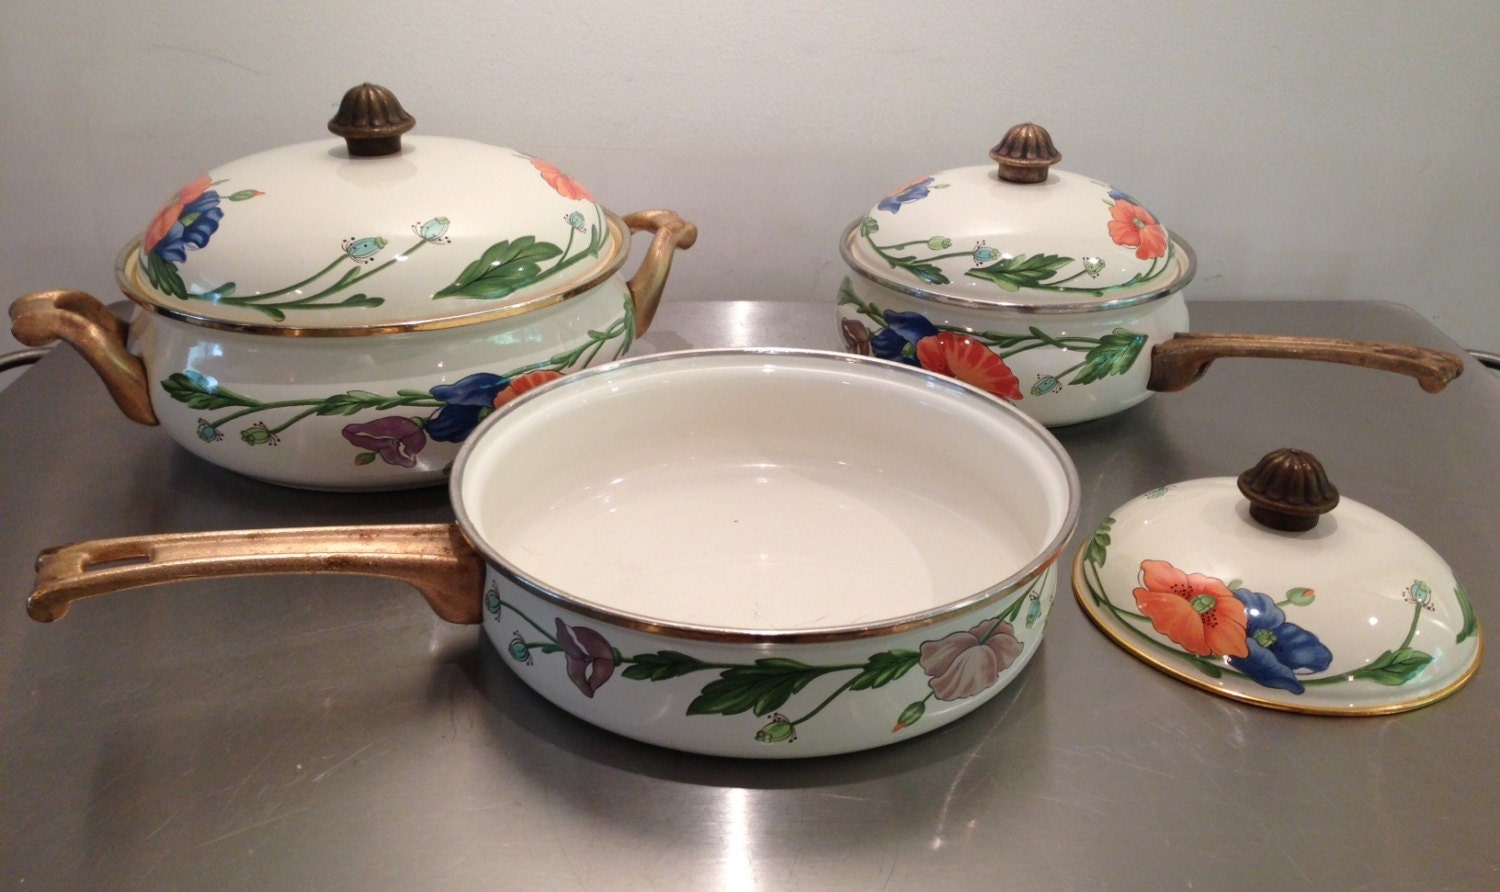 Vintage villeroy and boch amapola cookware set made in germany - Villeroy and bosh ...